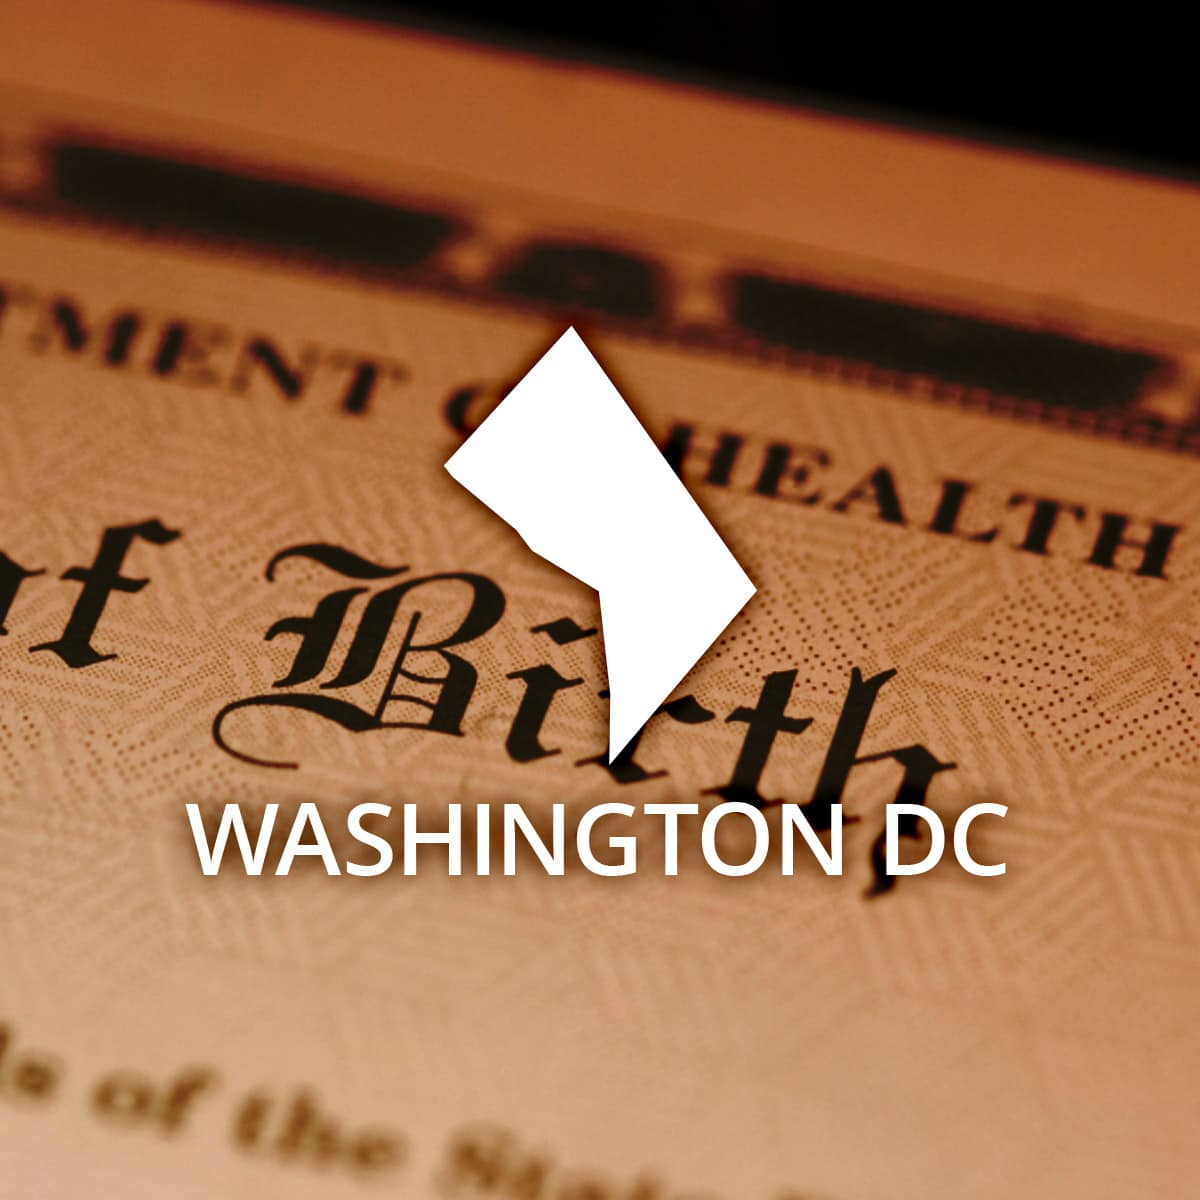 Where To Obtain A District Of Columbia Birth Certificate